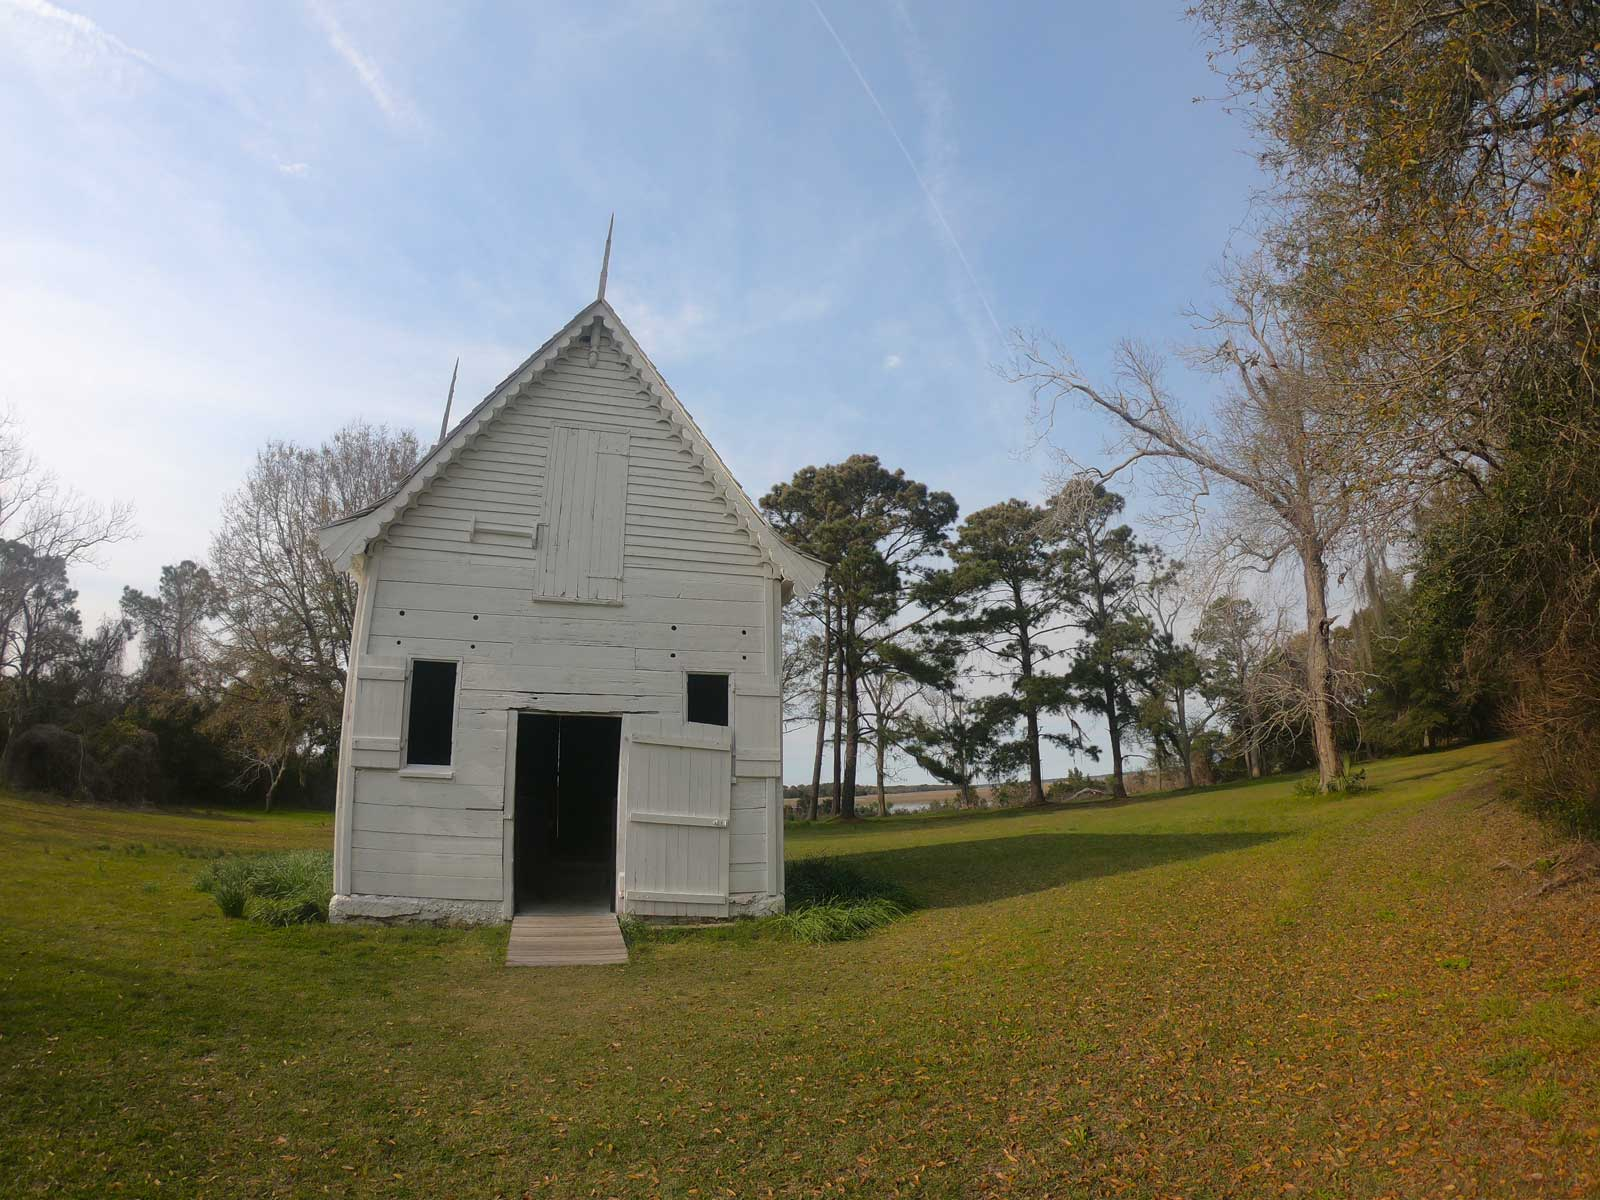 The white ice house, example of Gothic Revival Architecture, at Botany Bay Plantation, Edisto Island, SC